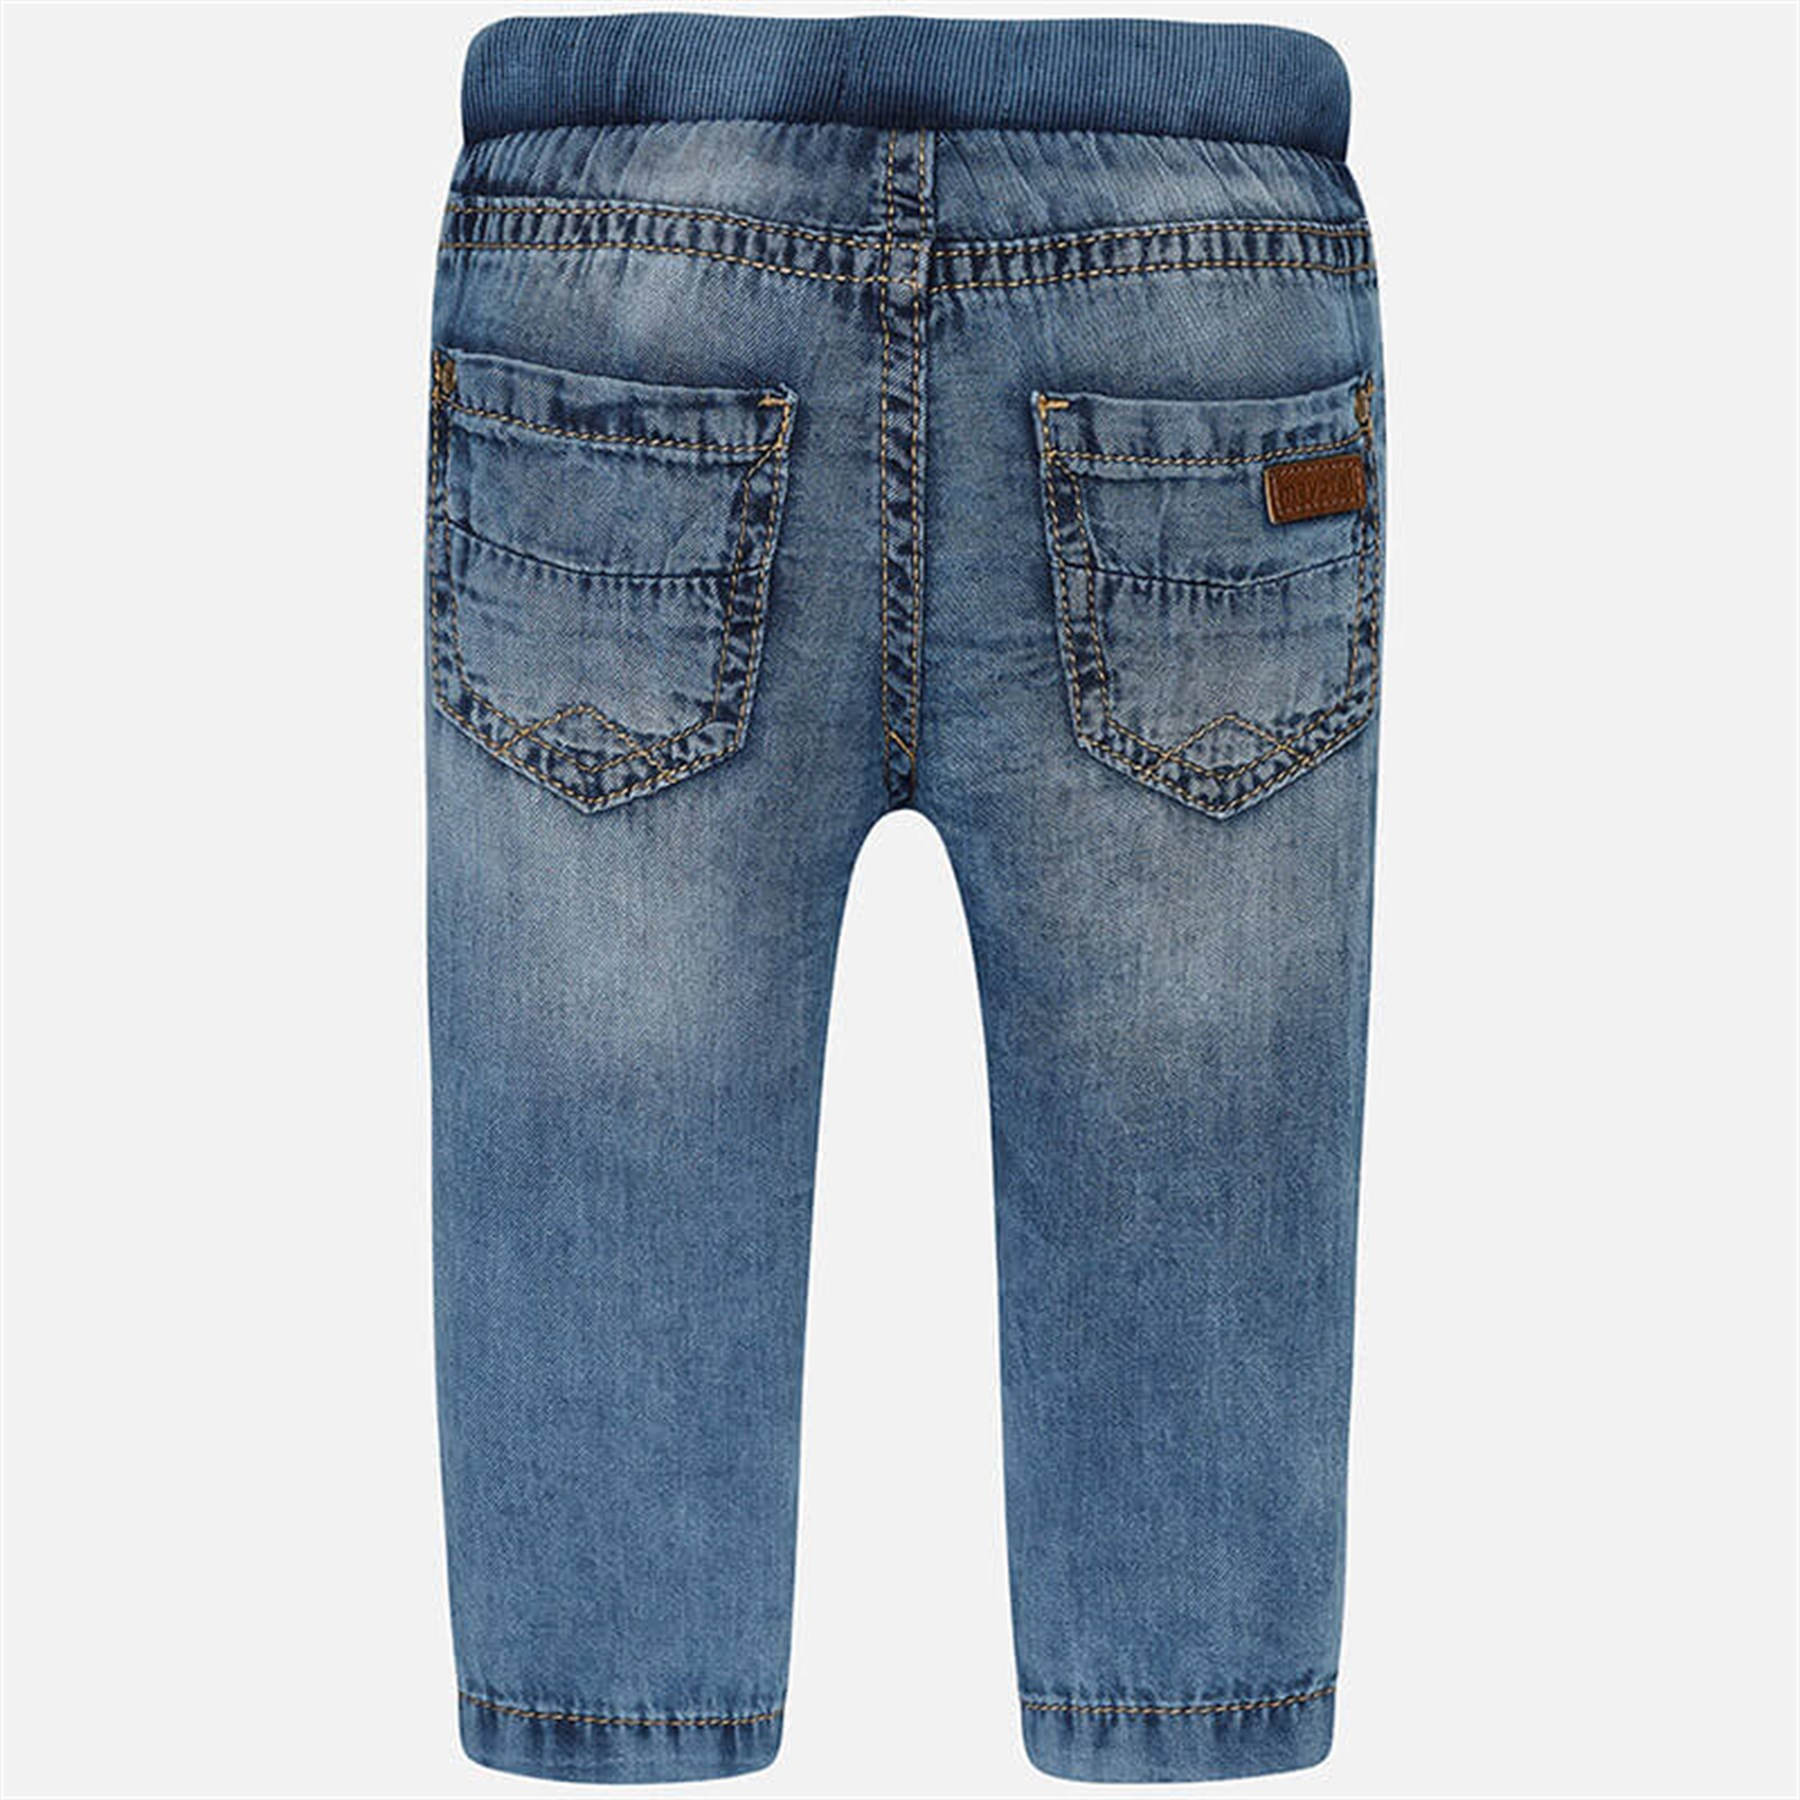 a6ce6bf63 0-36 Months Mayoral Baby Boy Jeans | Cslkids.com